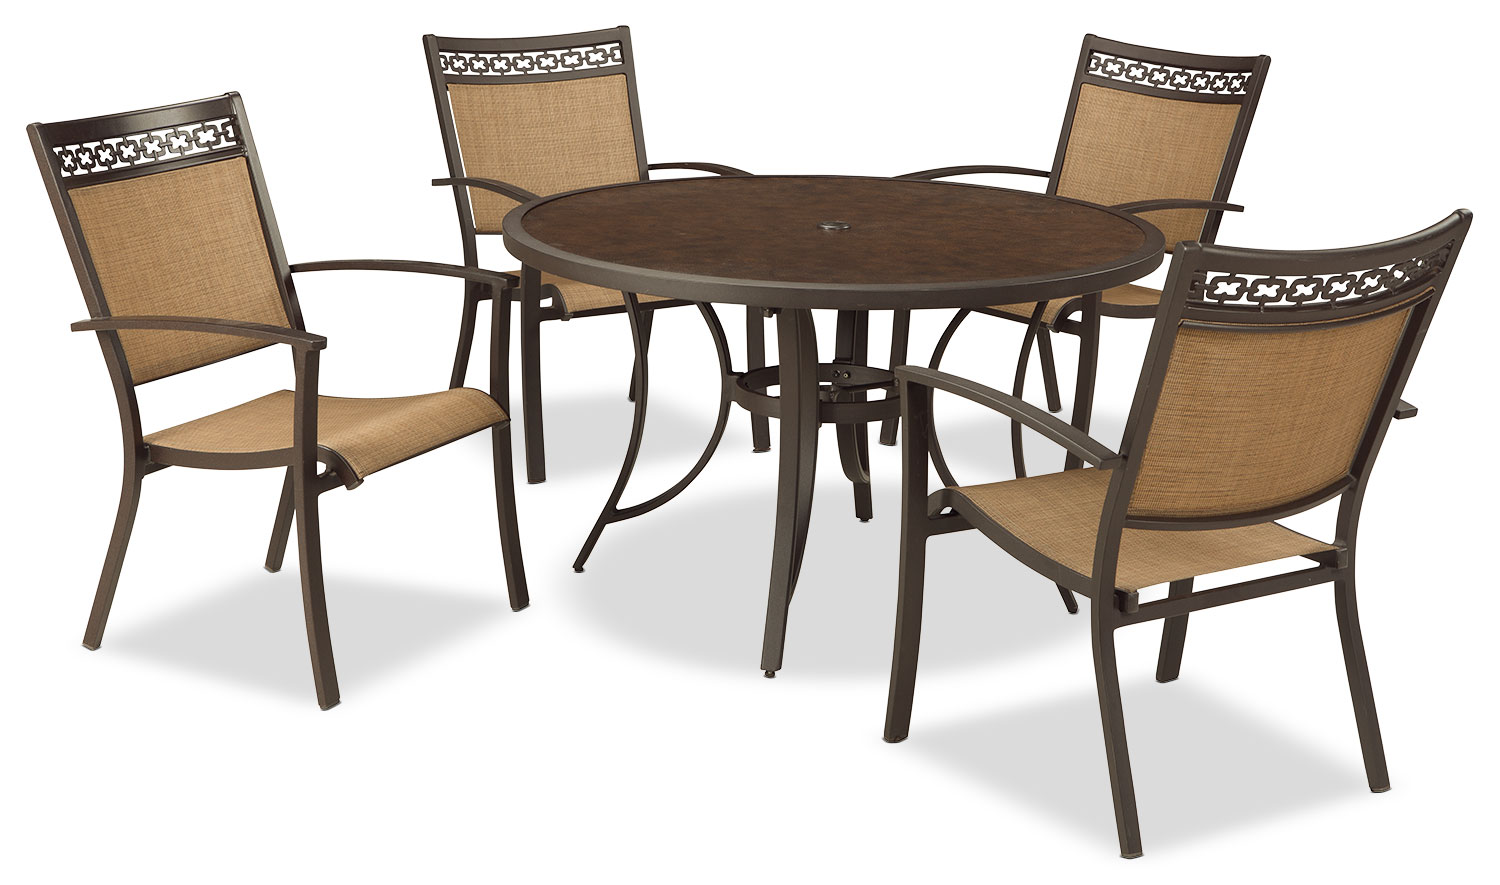 Carmadelia 5-Piece Patio Dining Set with Sling Chairs